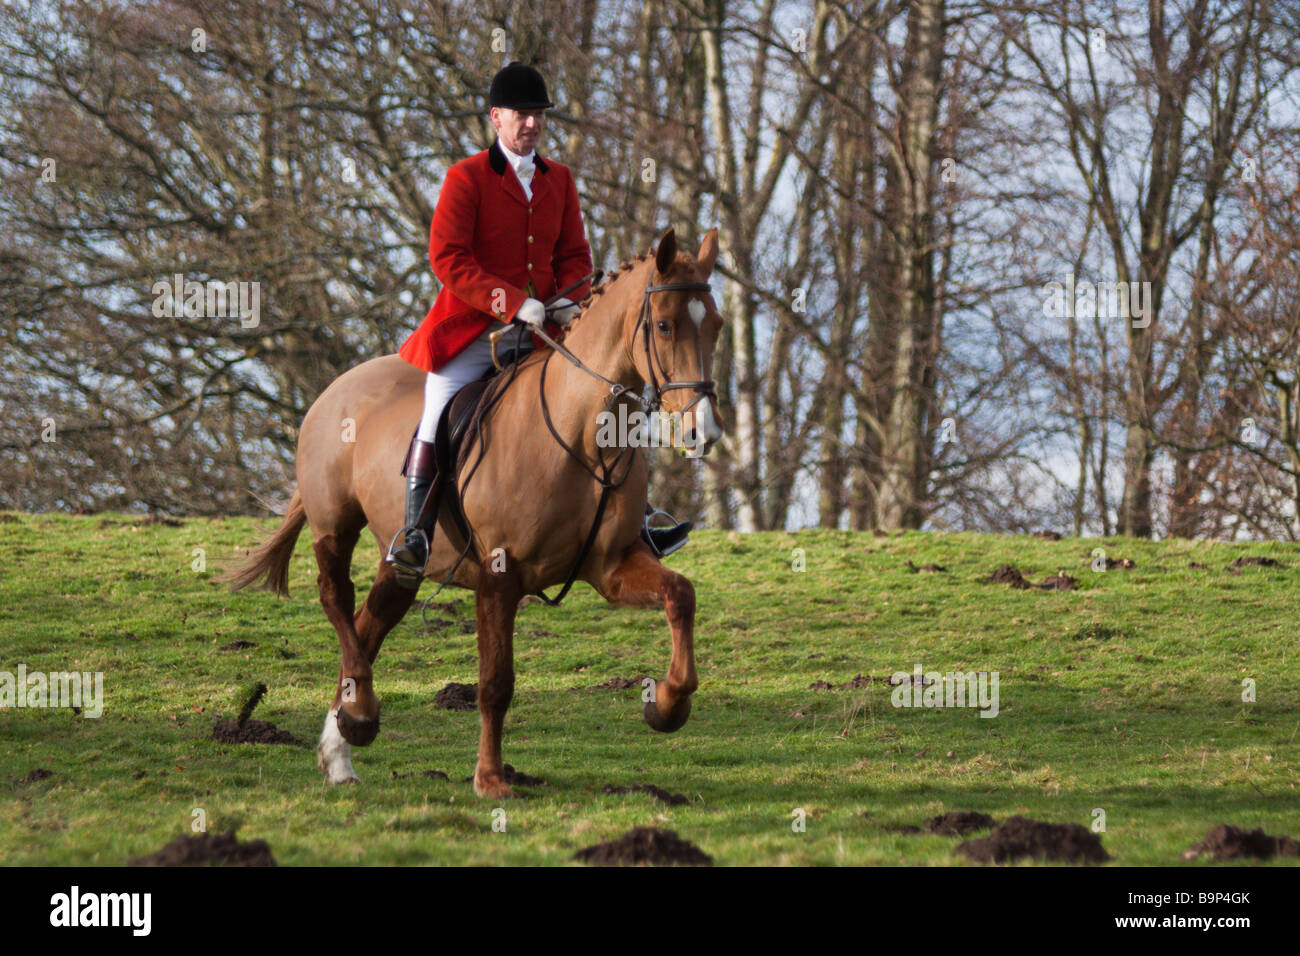 Master Of The Hunt Wearing Hunting Pink Red On Horseback Stock Photo Alamy